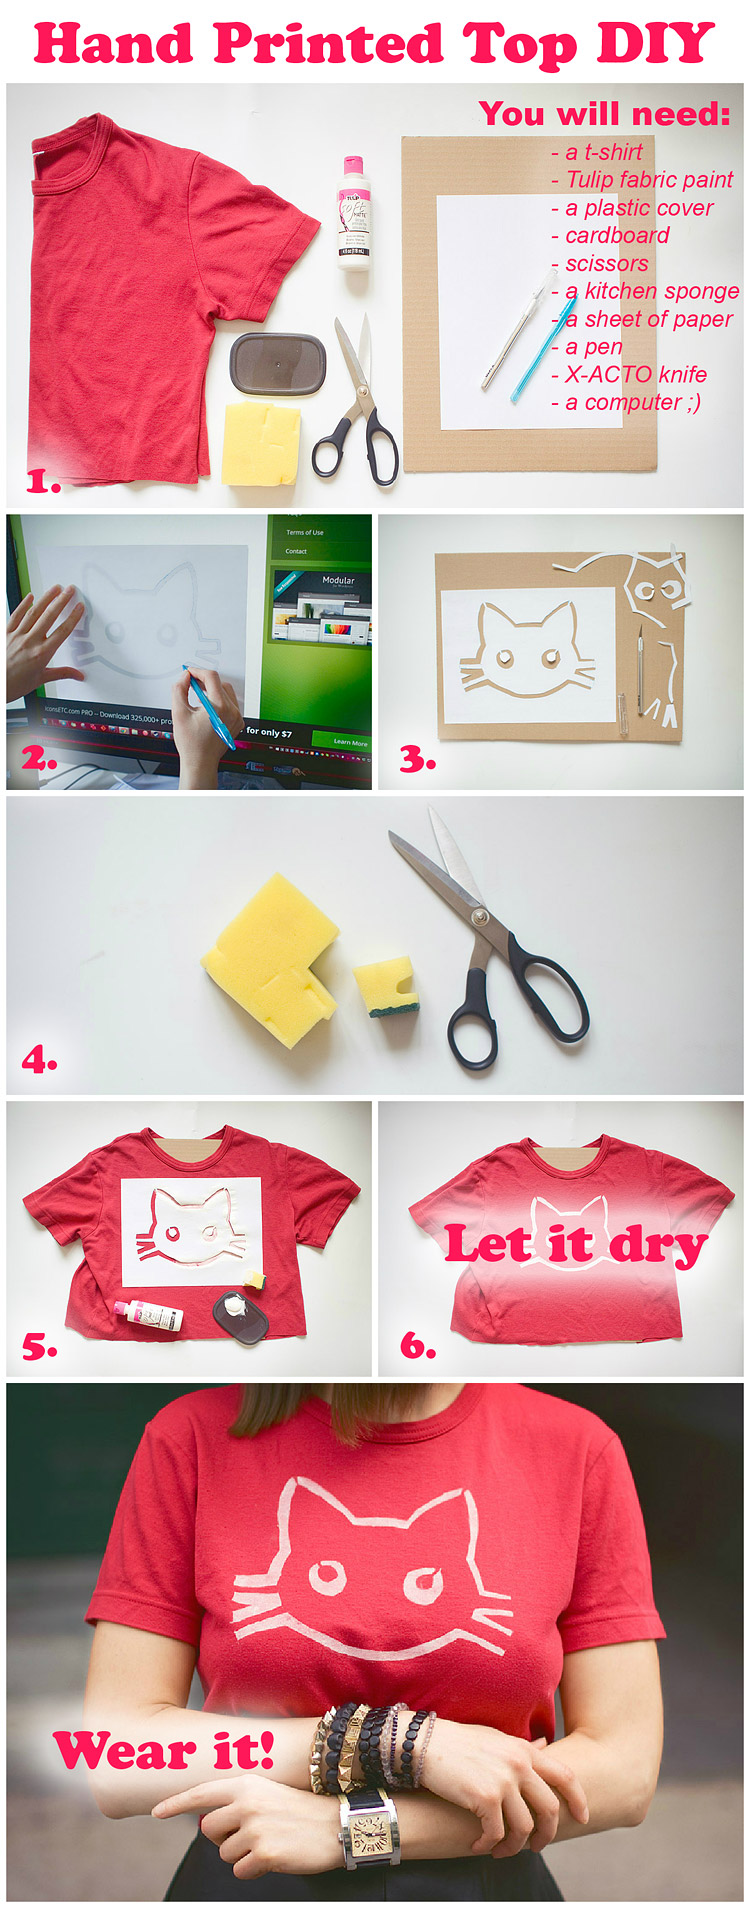 How to Hand Print On a Tee DIY Steps